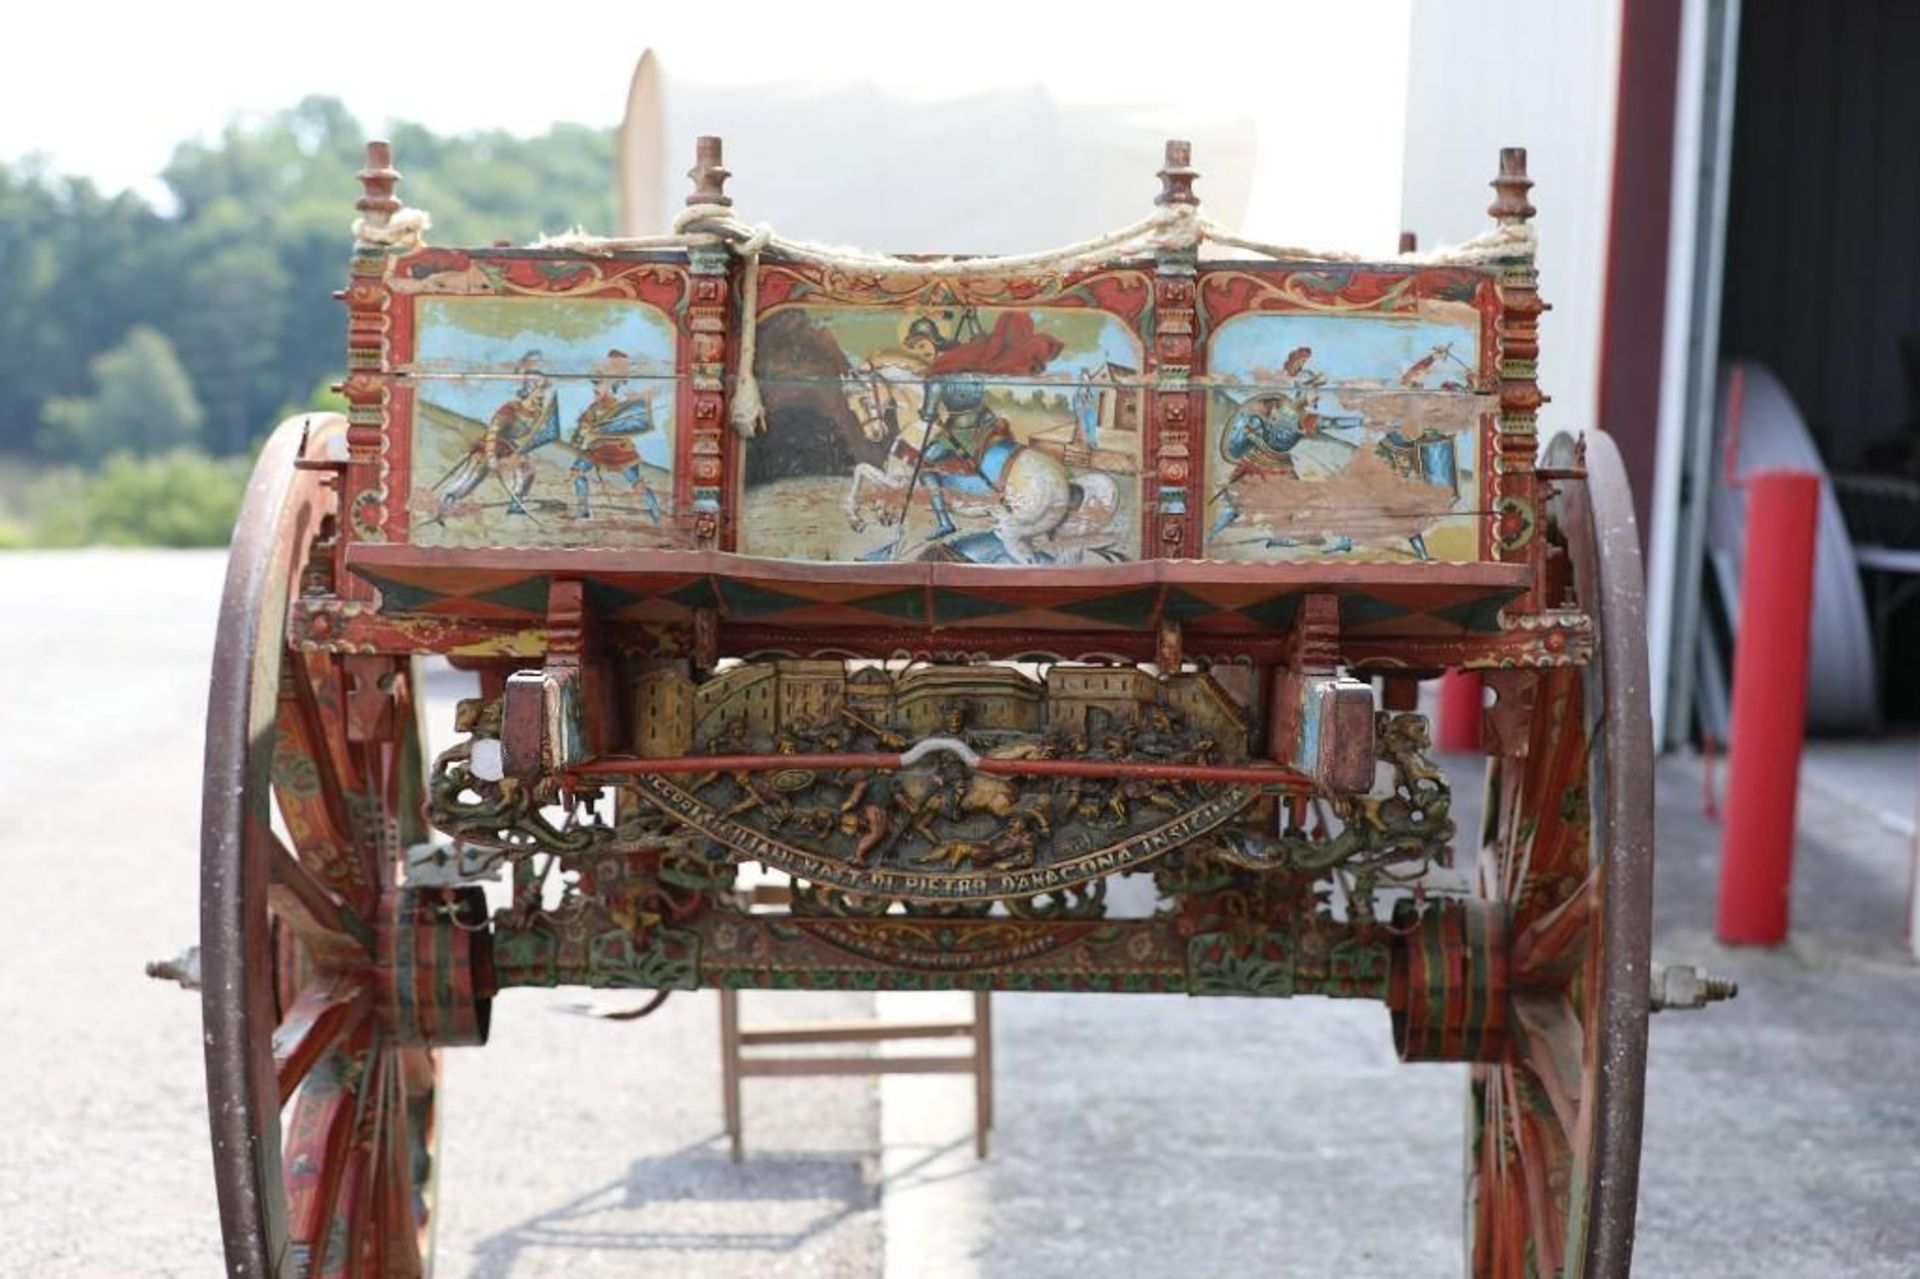 SPANISH GYPSY 2-Wheel Cart, Hand Carving & Paint - Image 3 of 3